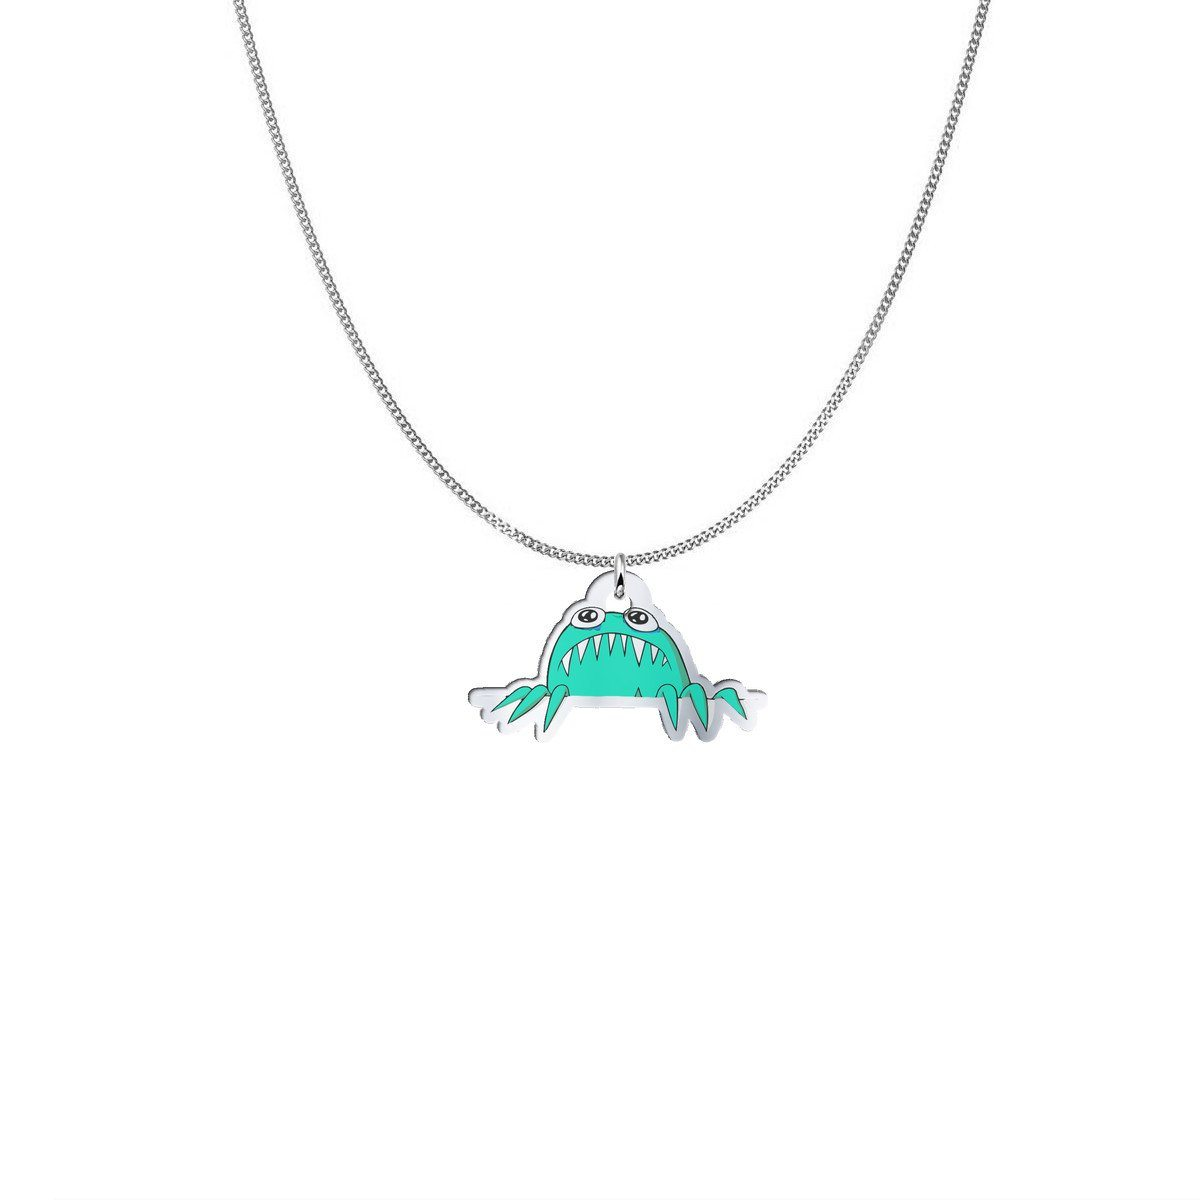 Pendant - Annie The Anxiety Monster Silver Necklace